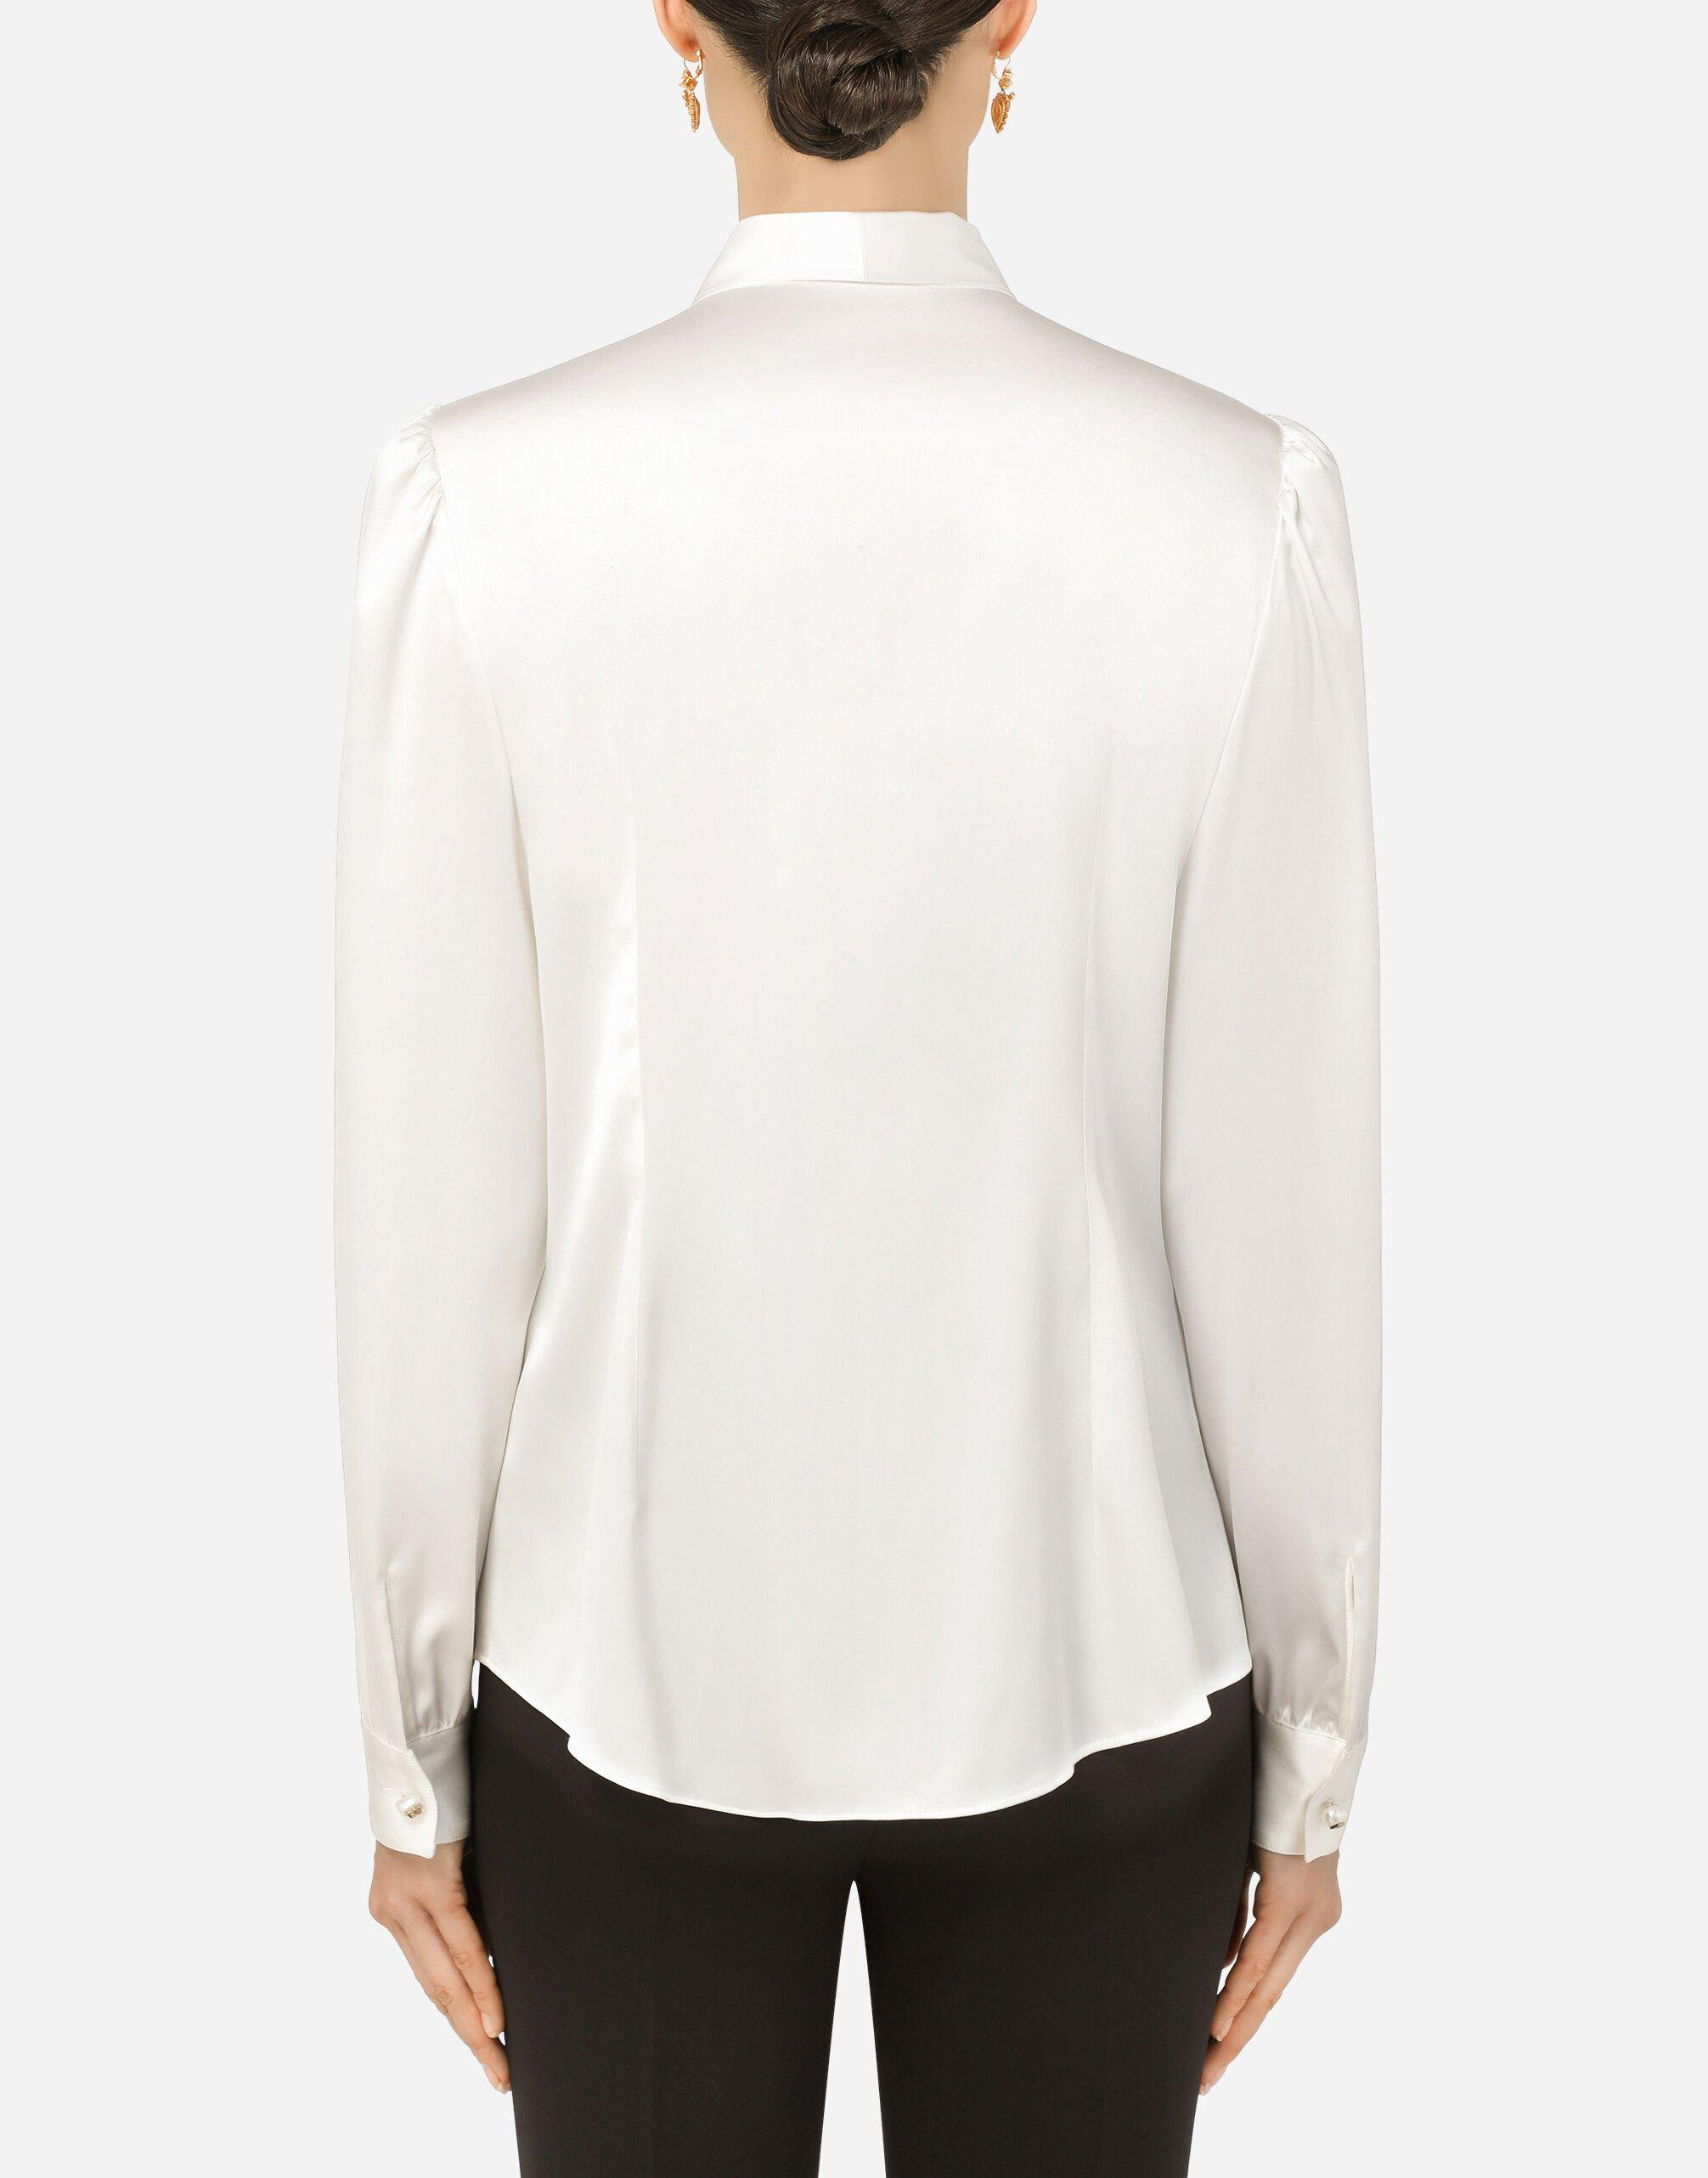 Satin shirt with pearl buttons with DG logo 1